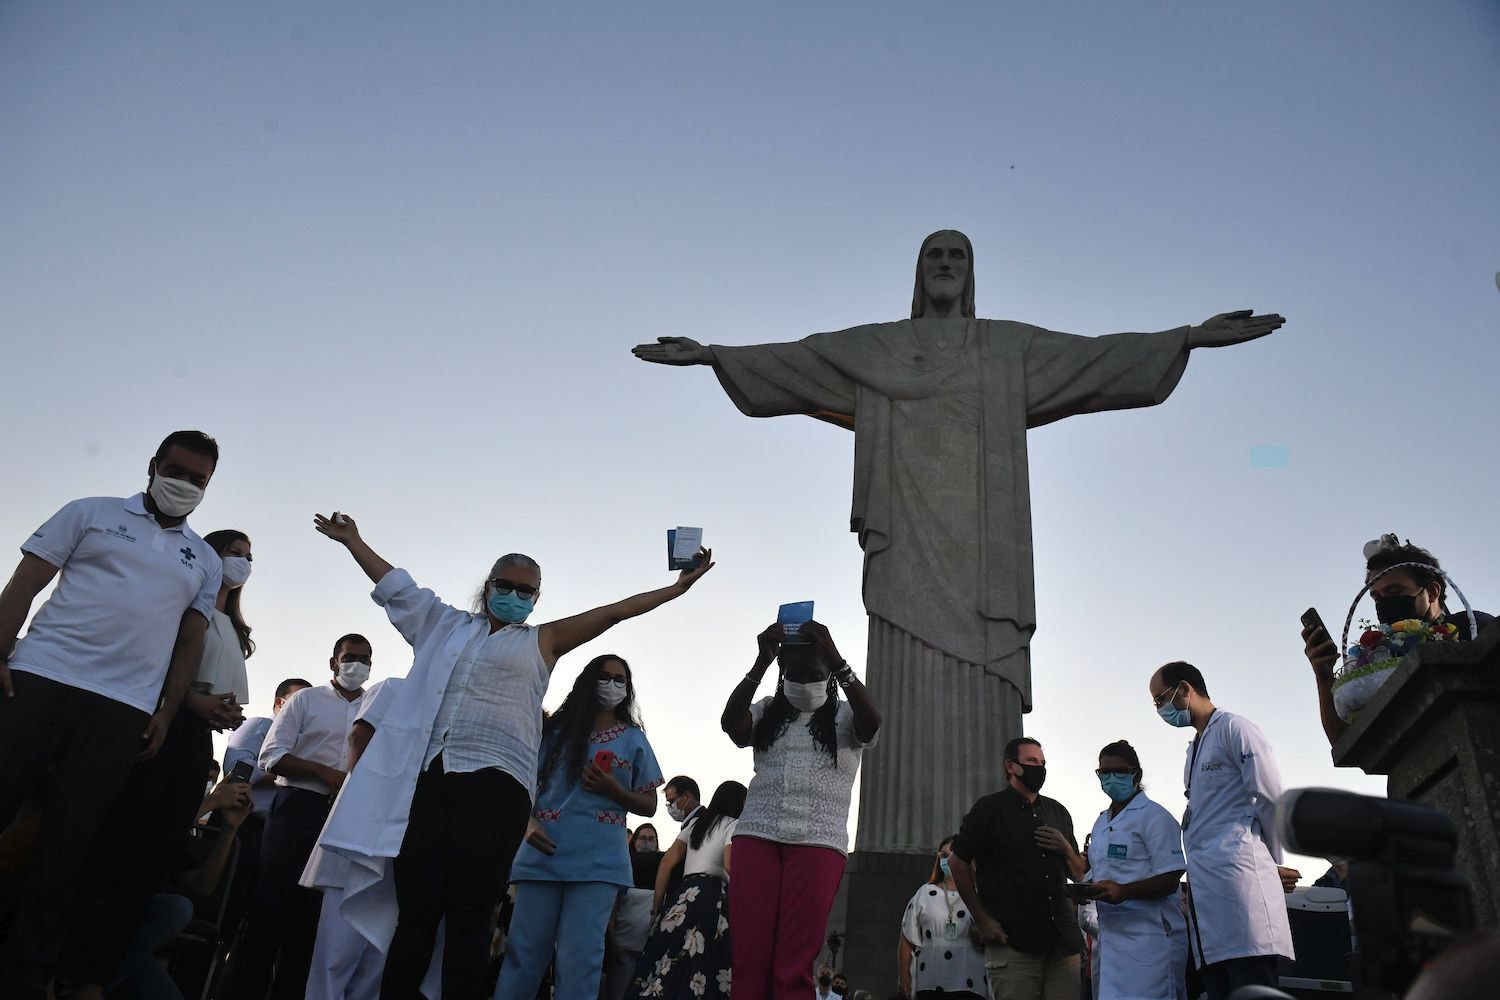 People show their vaccination cards after they were inoculated with the Sinovac Biotec's CoronaVac vaccine against COVID-19 at the Christ The Redeemer statue in Rio de Janeiro, Brazil on Jan. 18.